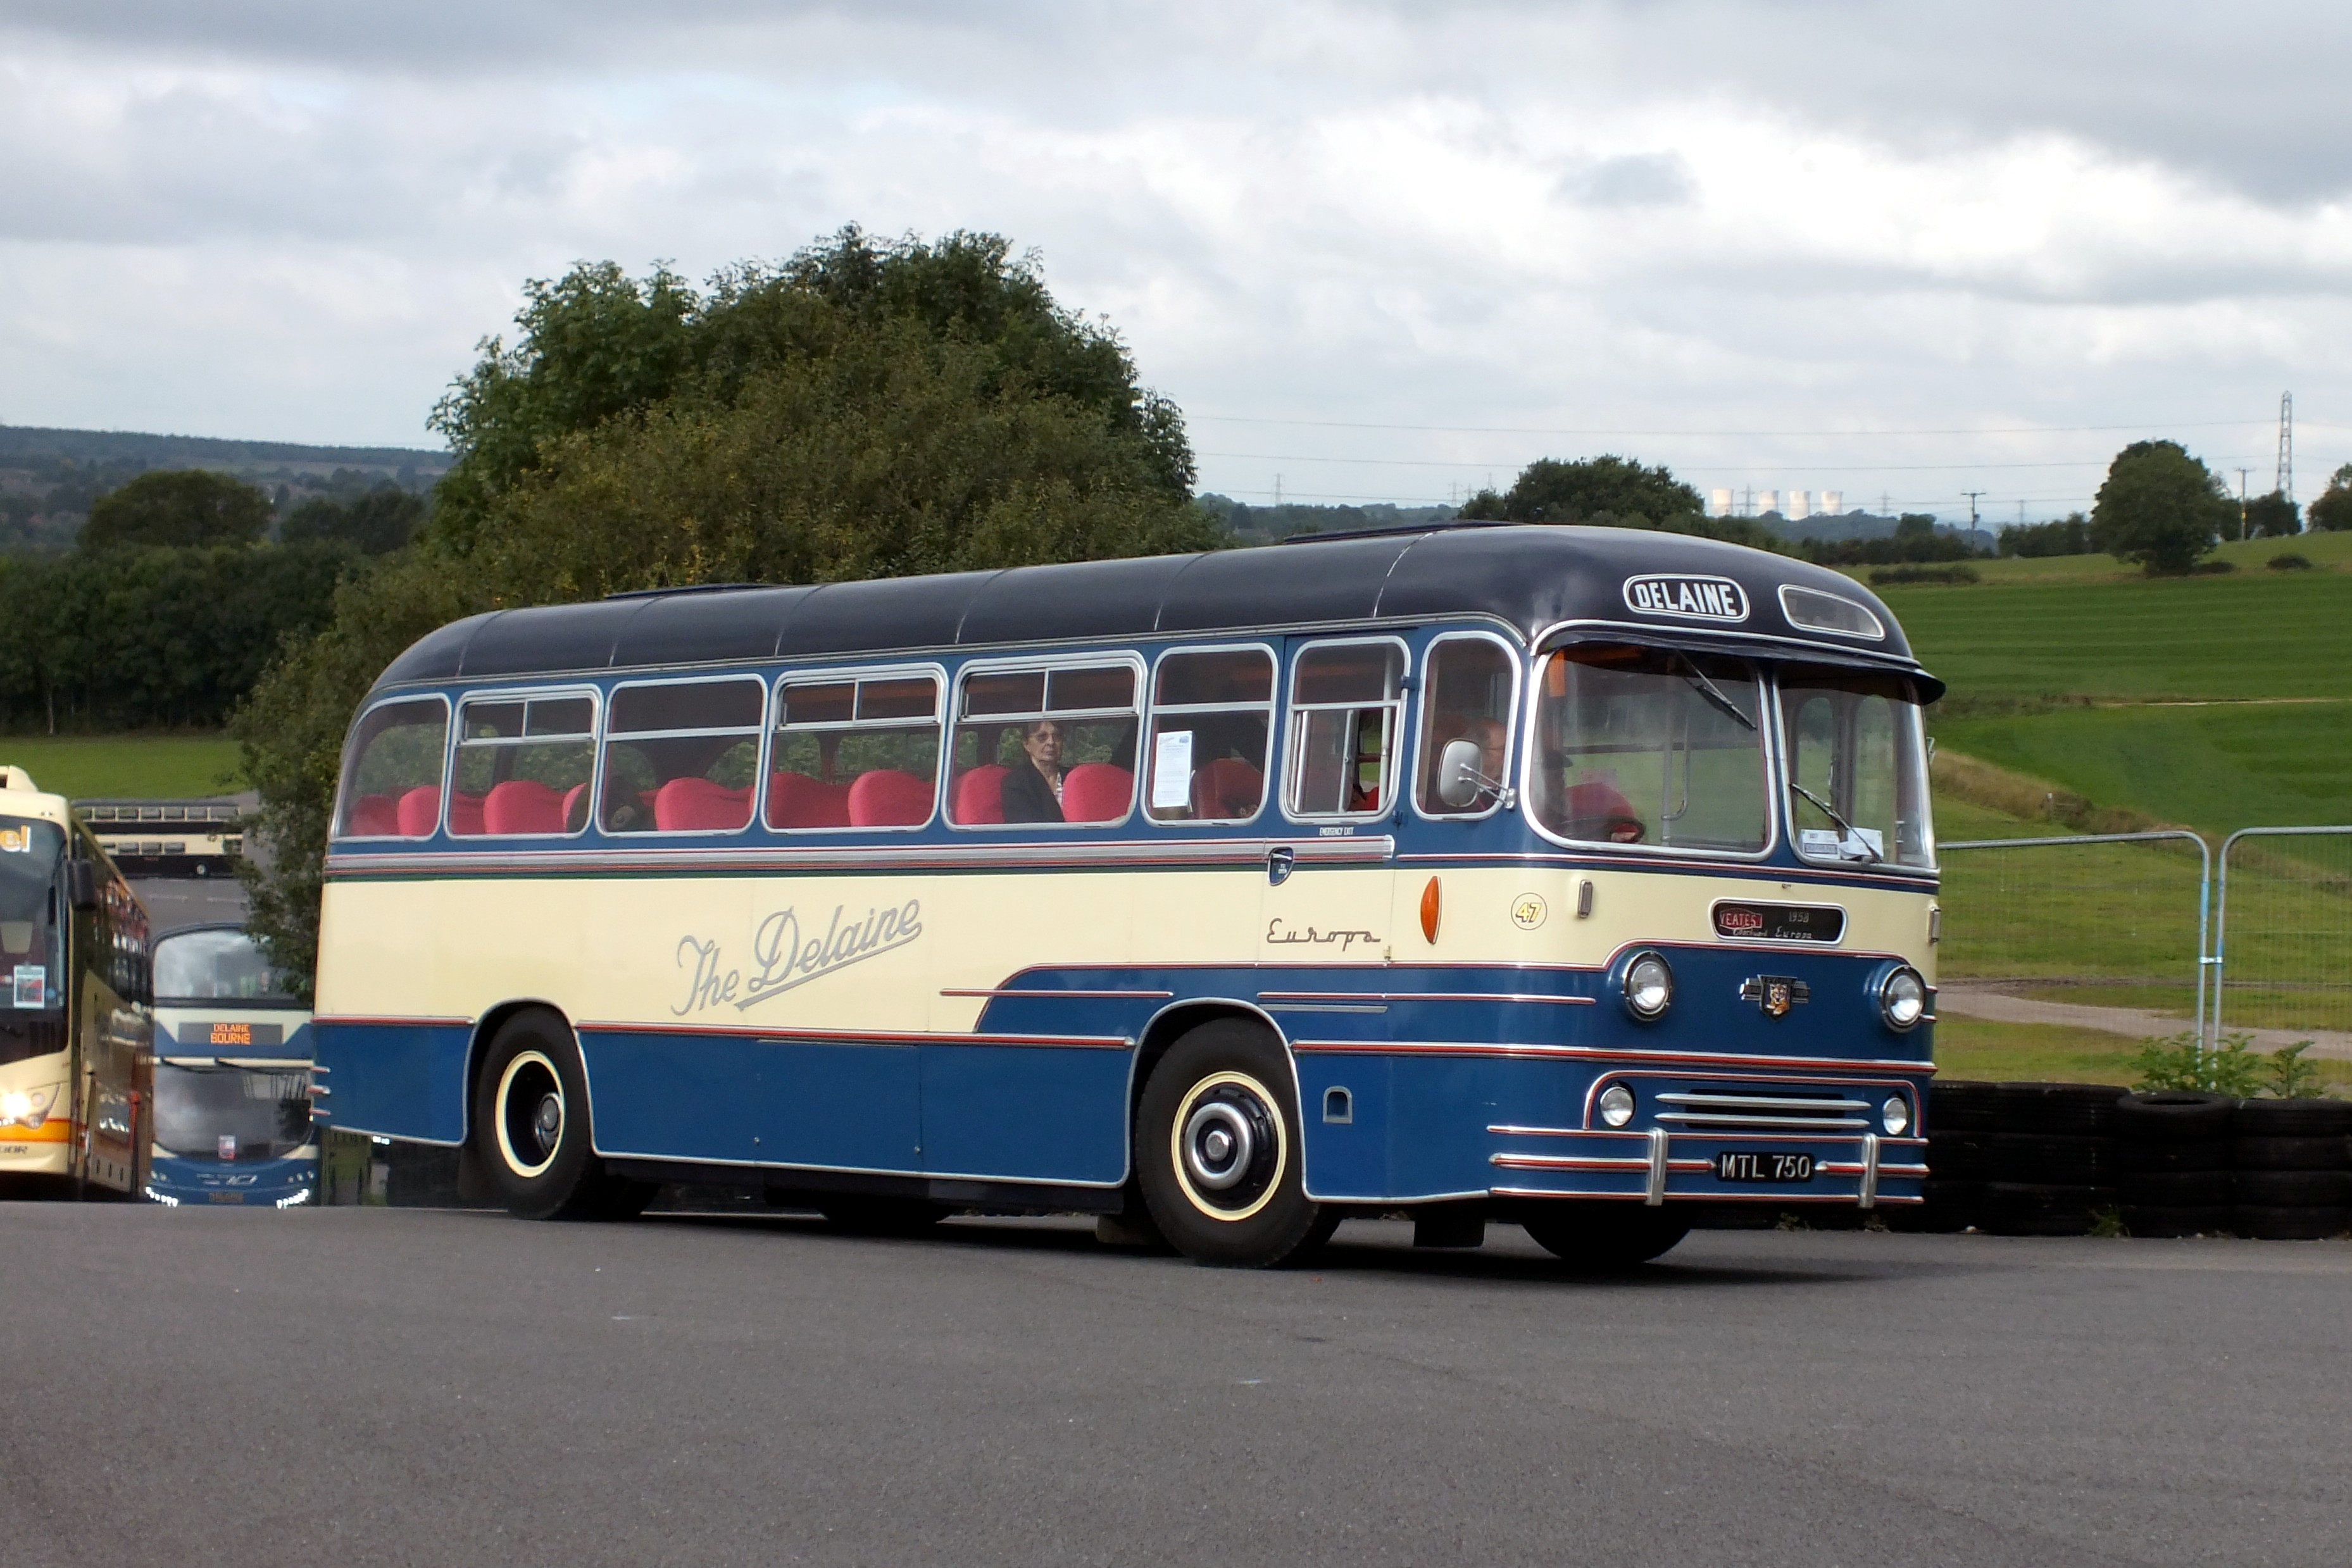 17 September 2017 Showbus, Donington. 374.jpg